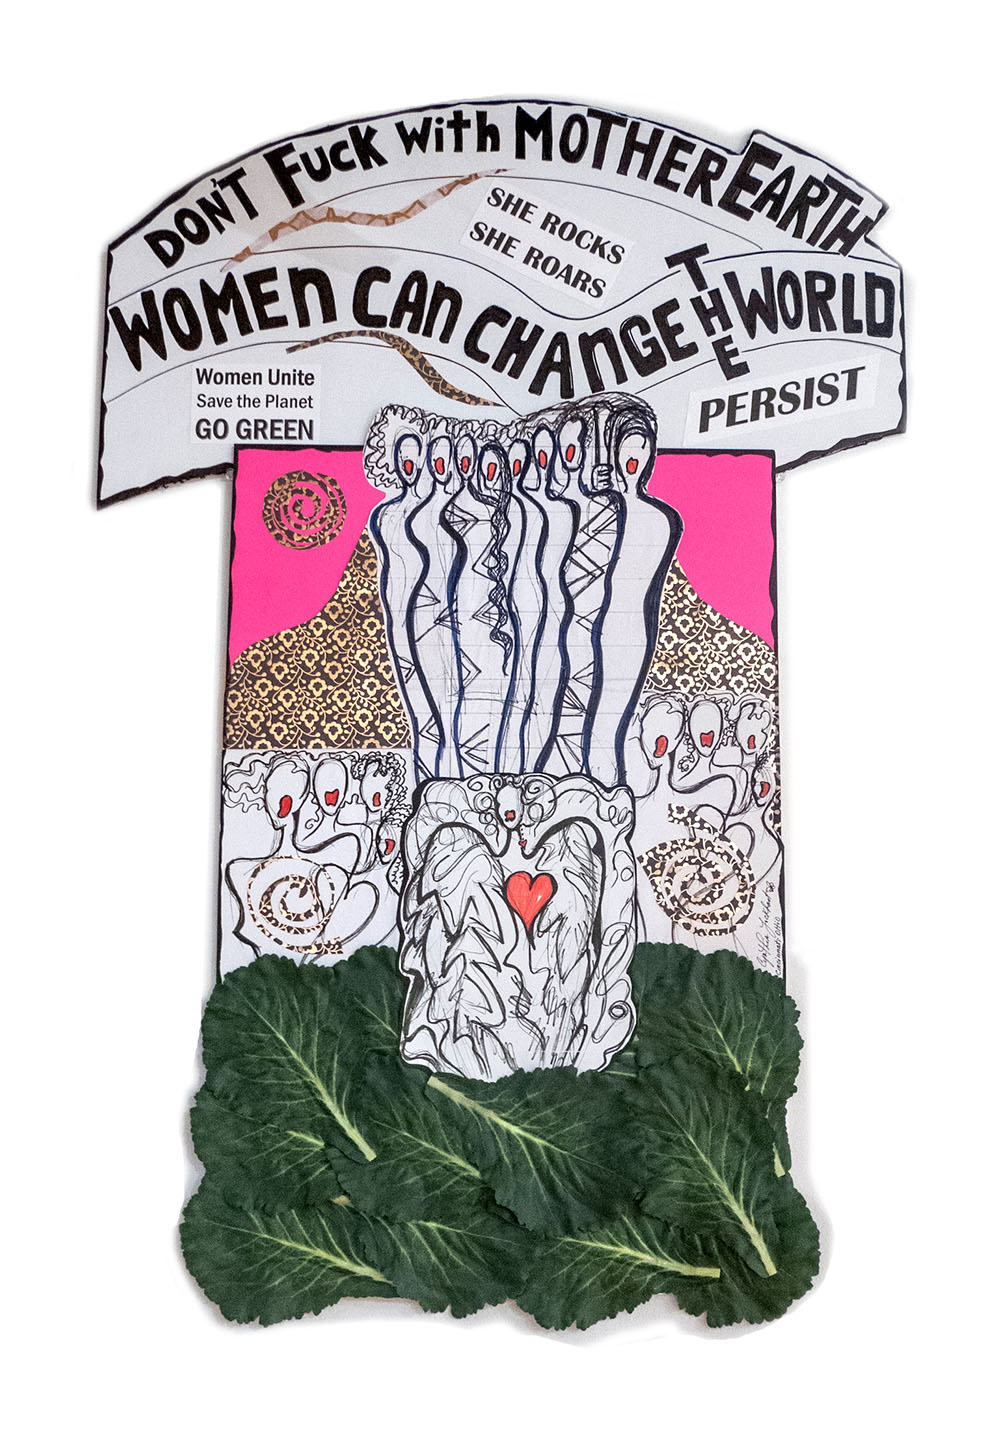 Don't Fuck with Mother Earth Women Can Change the World